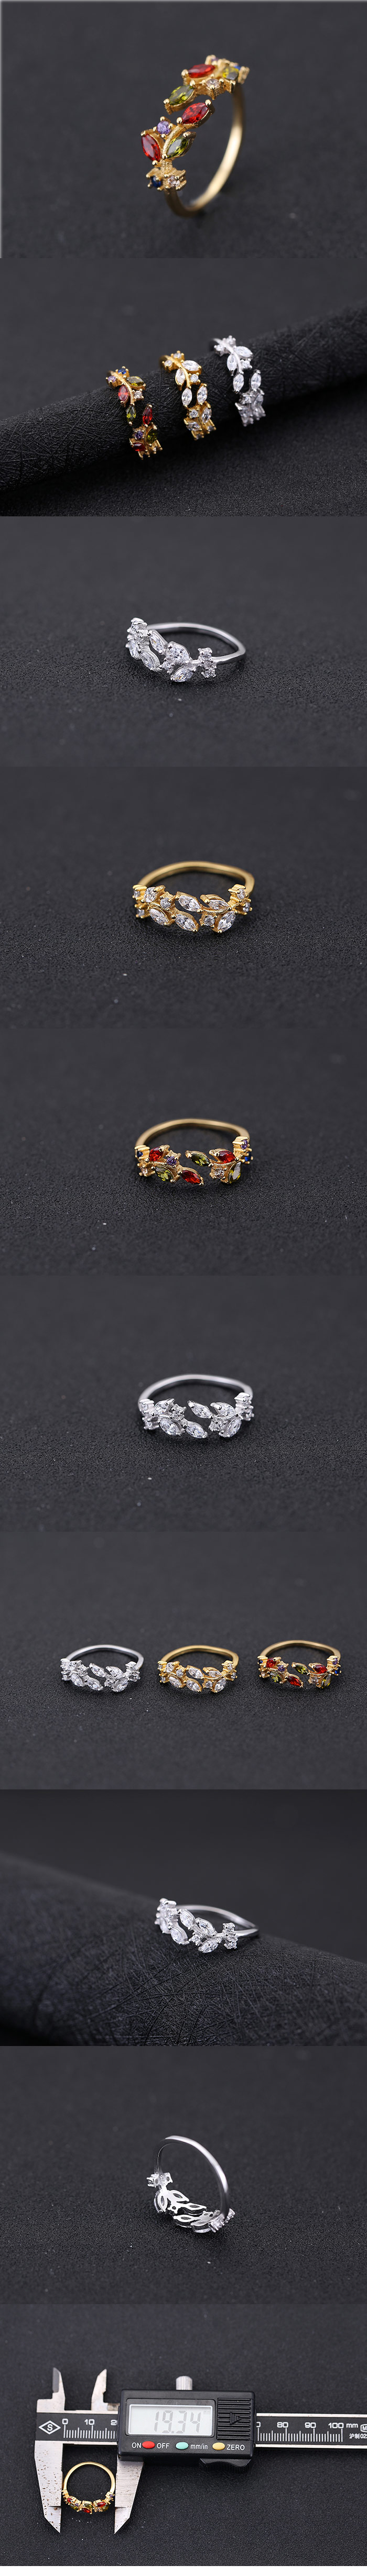 Jewellery for women Korean Fashion OL Bright Zircon Open Ring wholesales yiwu suppliers china NHSC203739